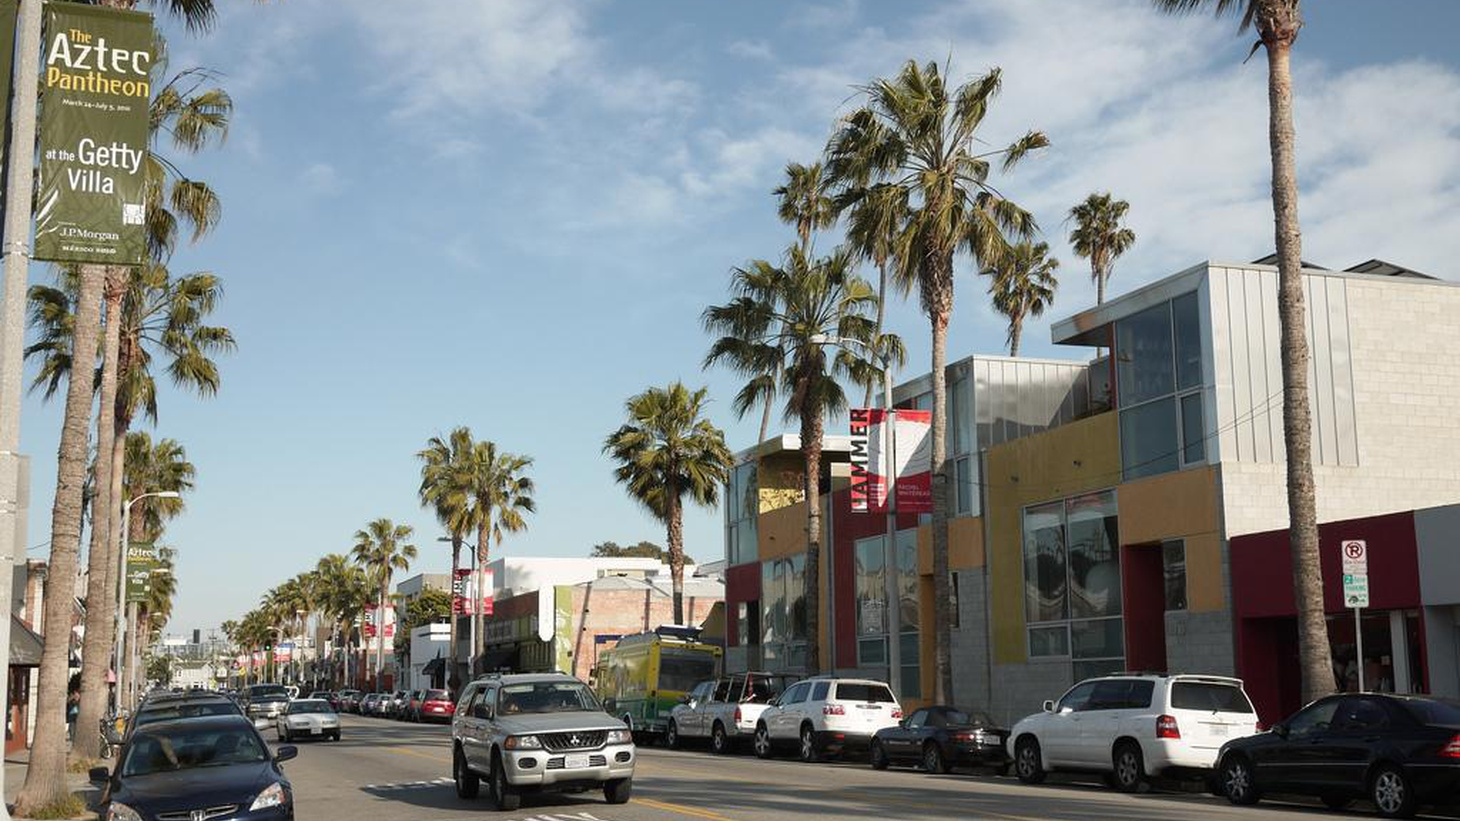 The digital world's moving to LA, the heart of the entertainment world. Content and technology are gentrifying Silicon Beach. Will Venice ever be funky again after Google?